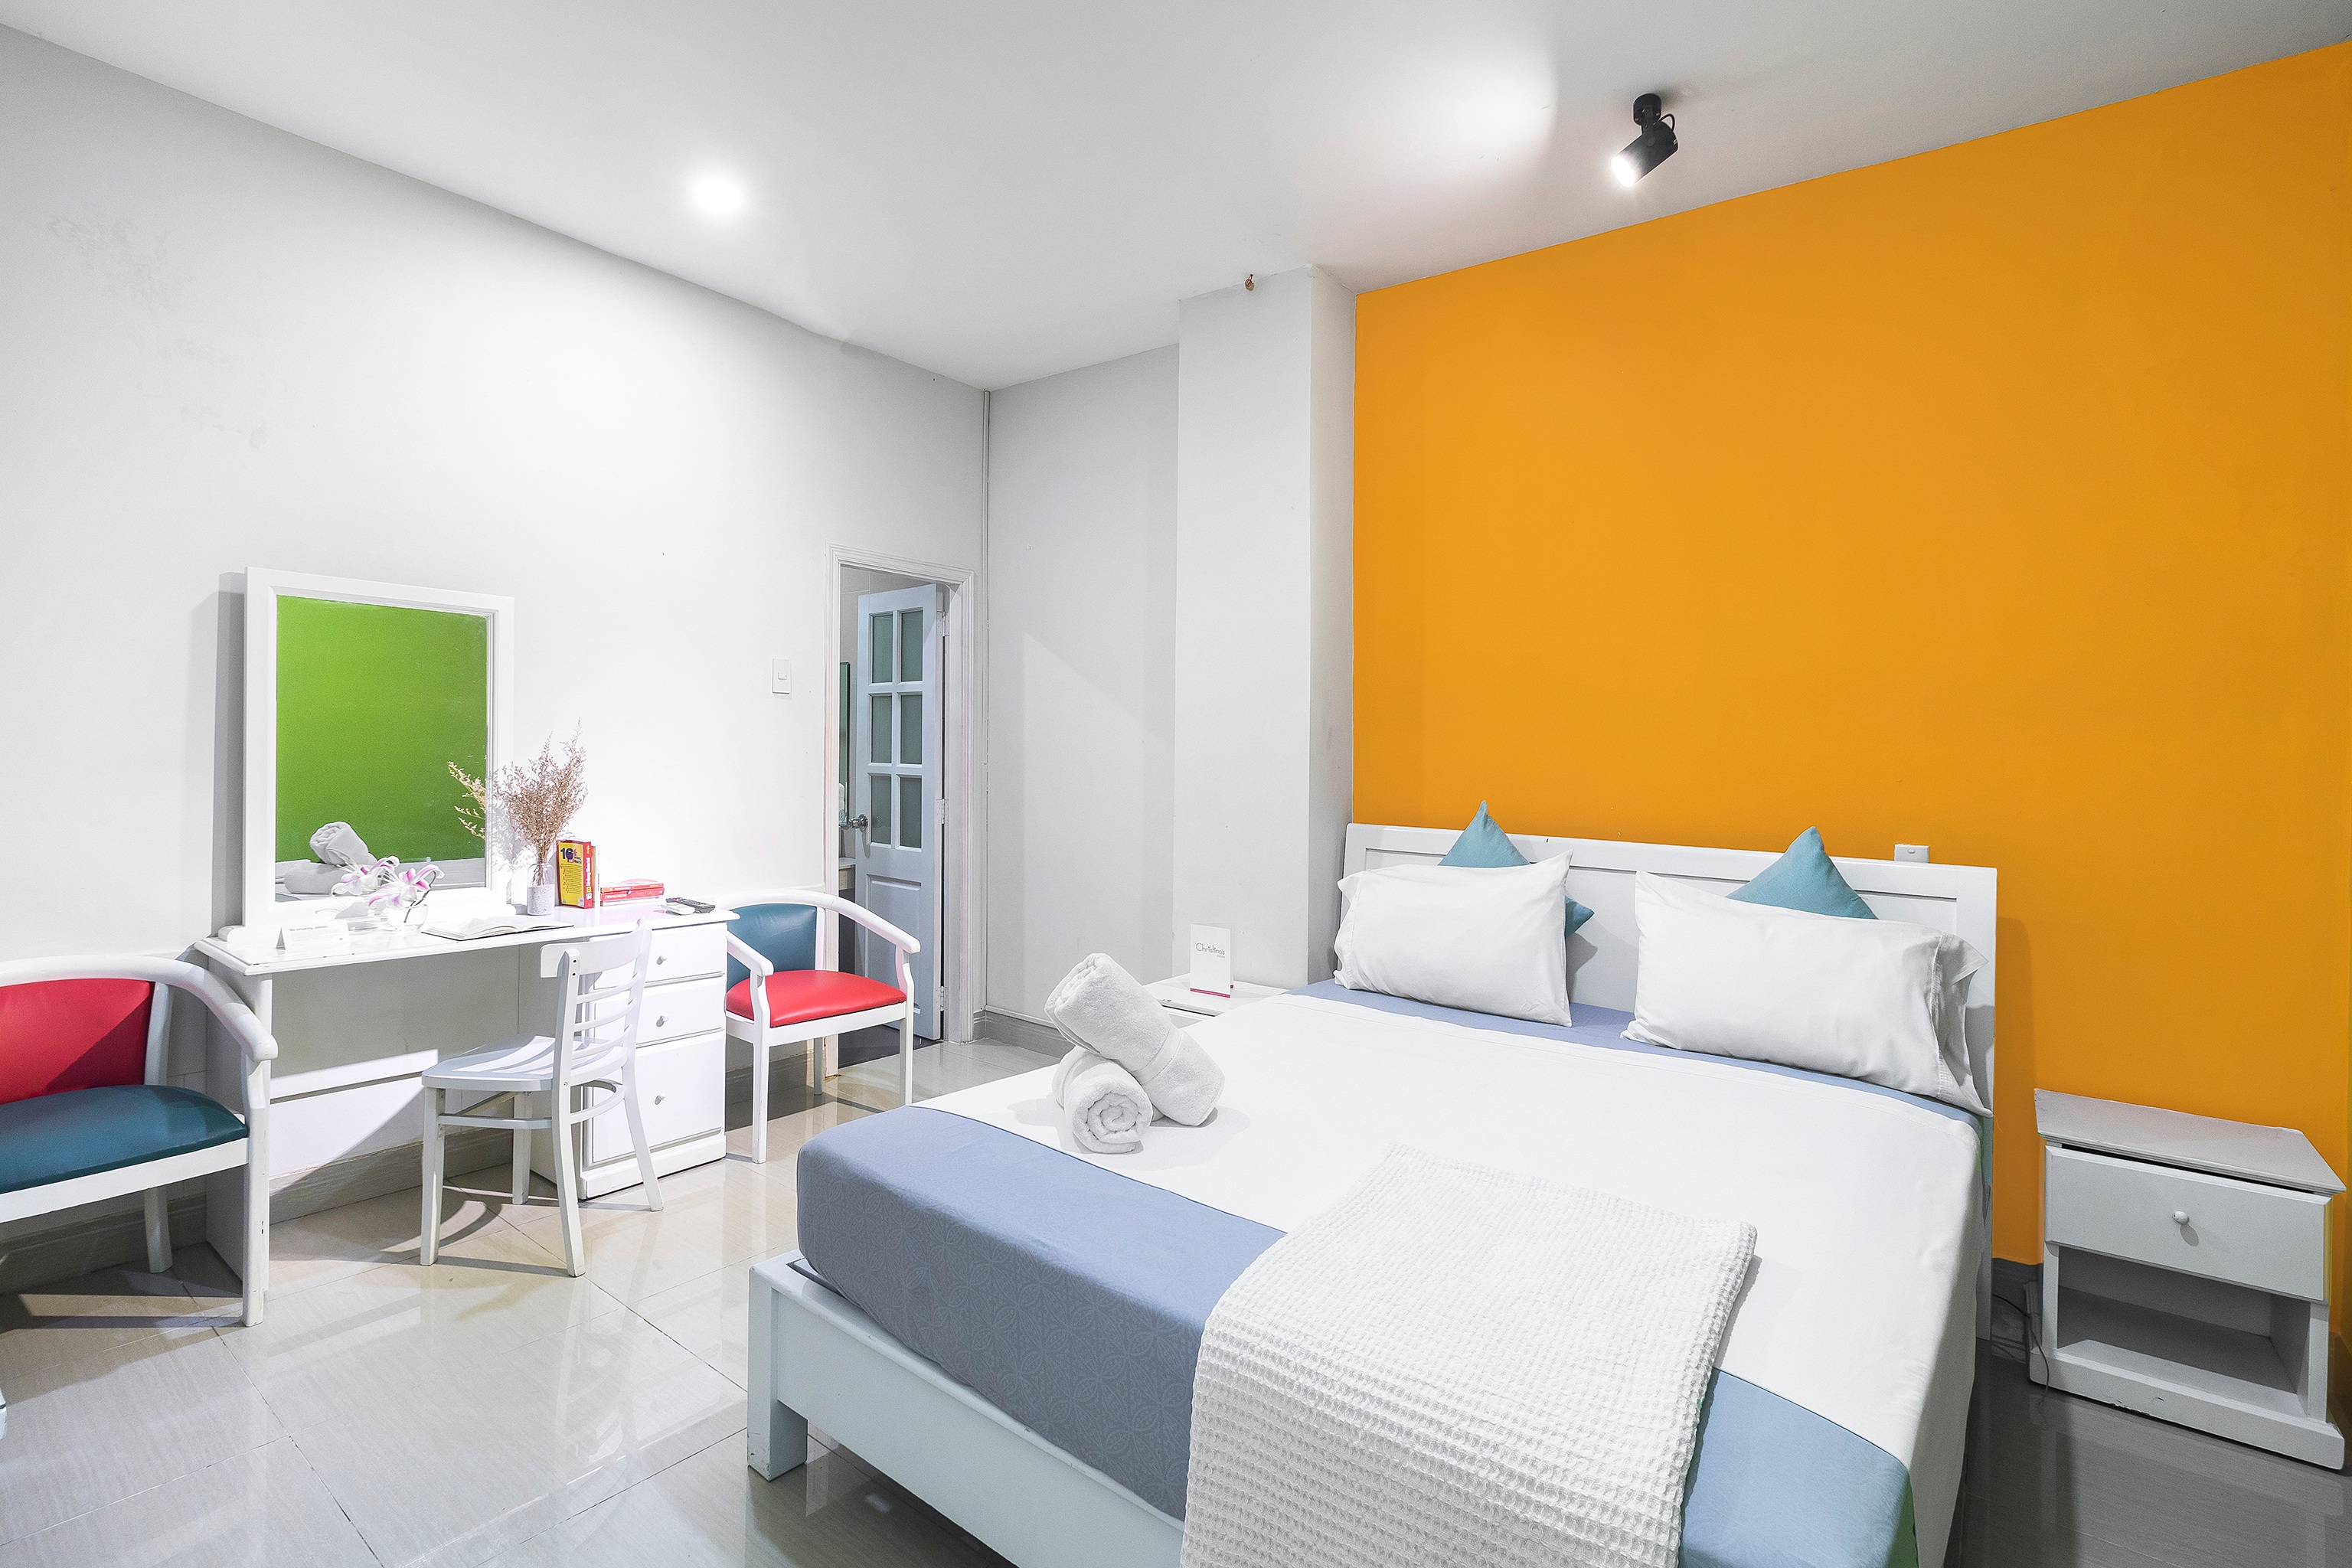 apartment rental cost ho chi minh city vietnam